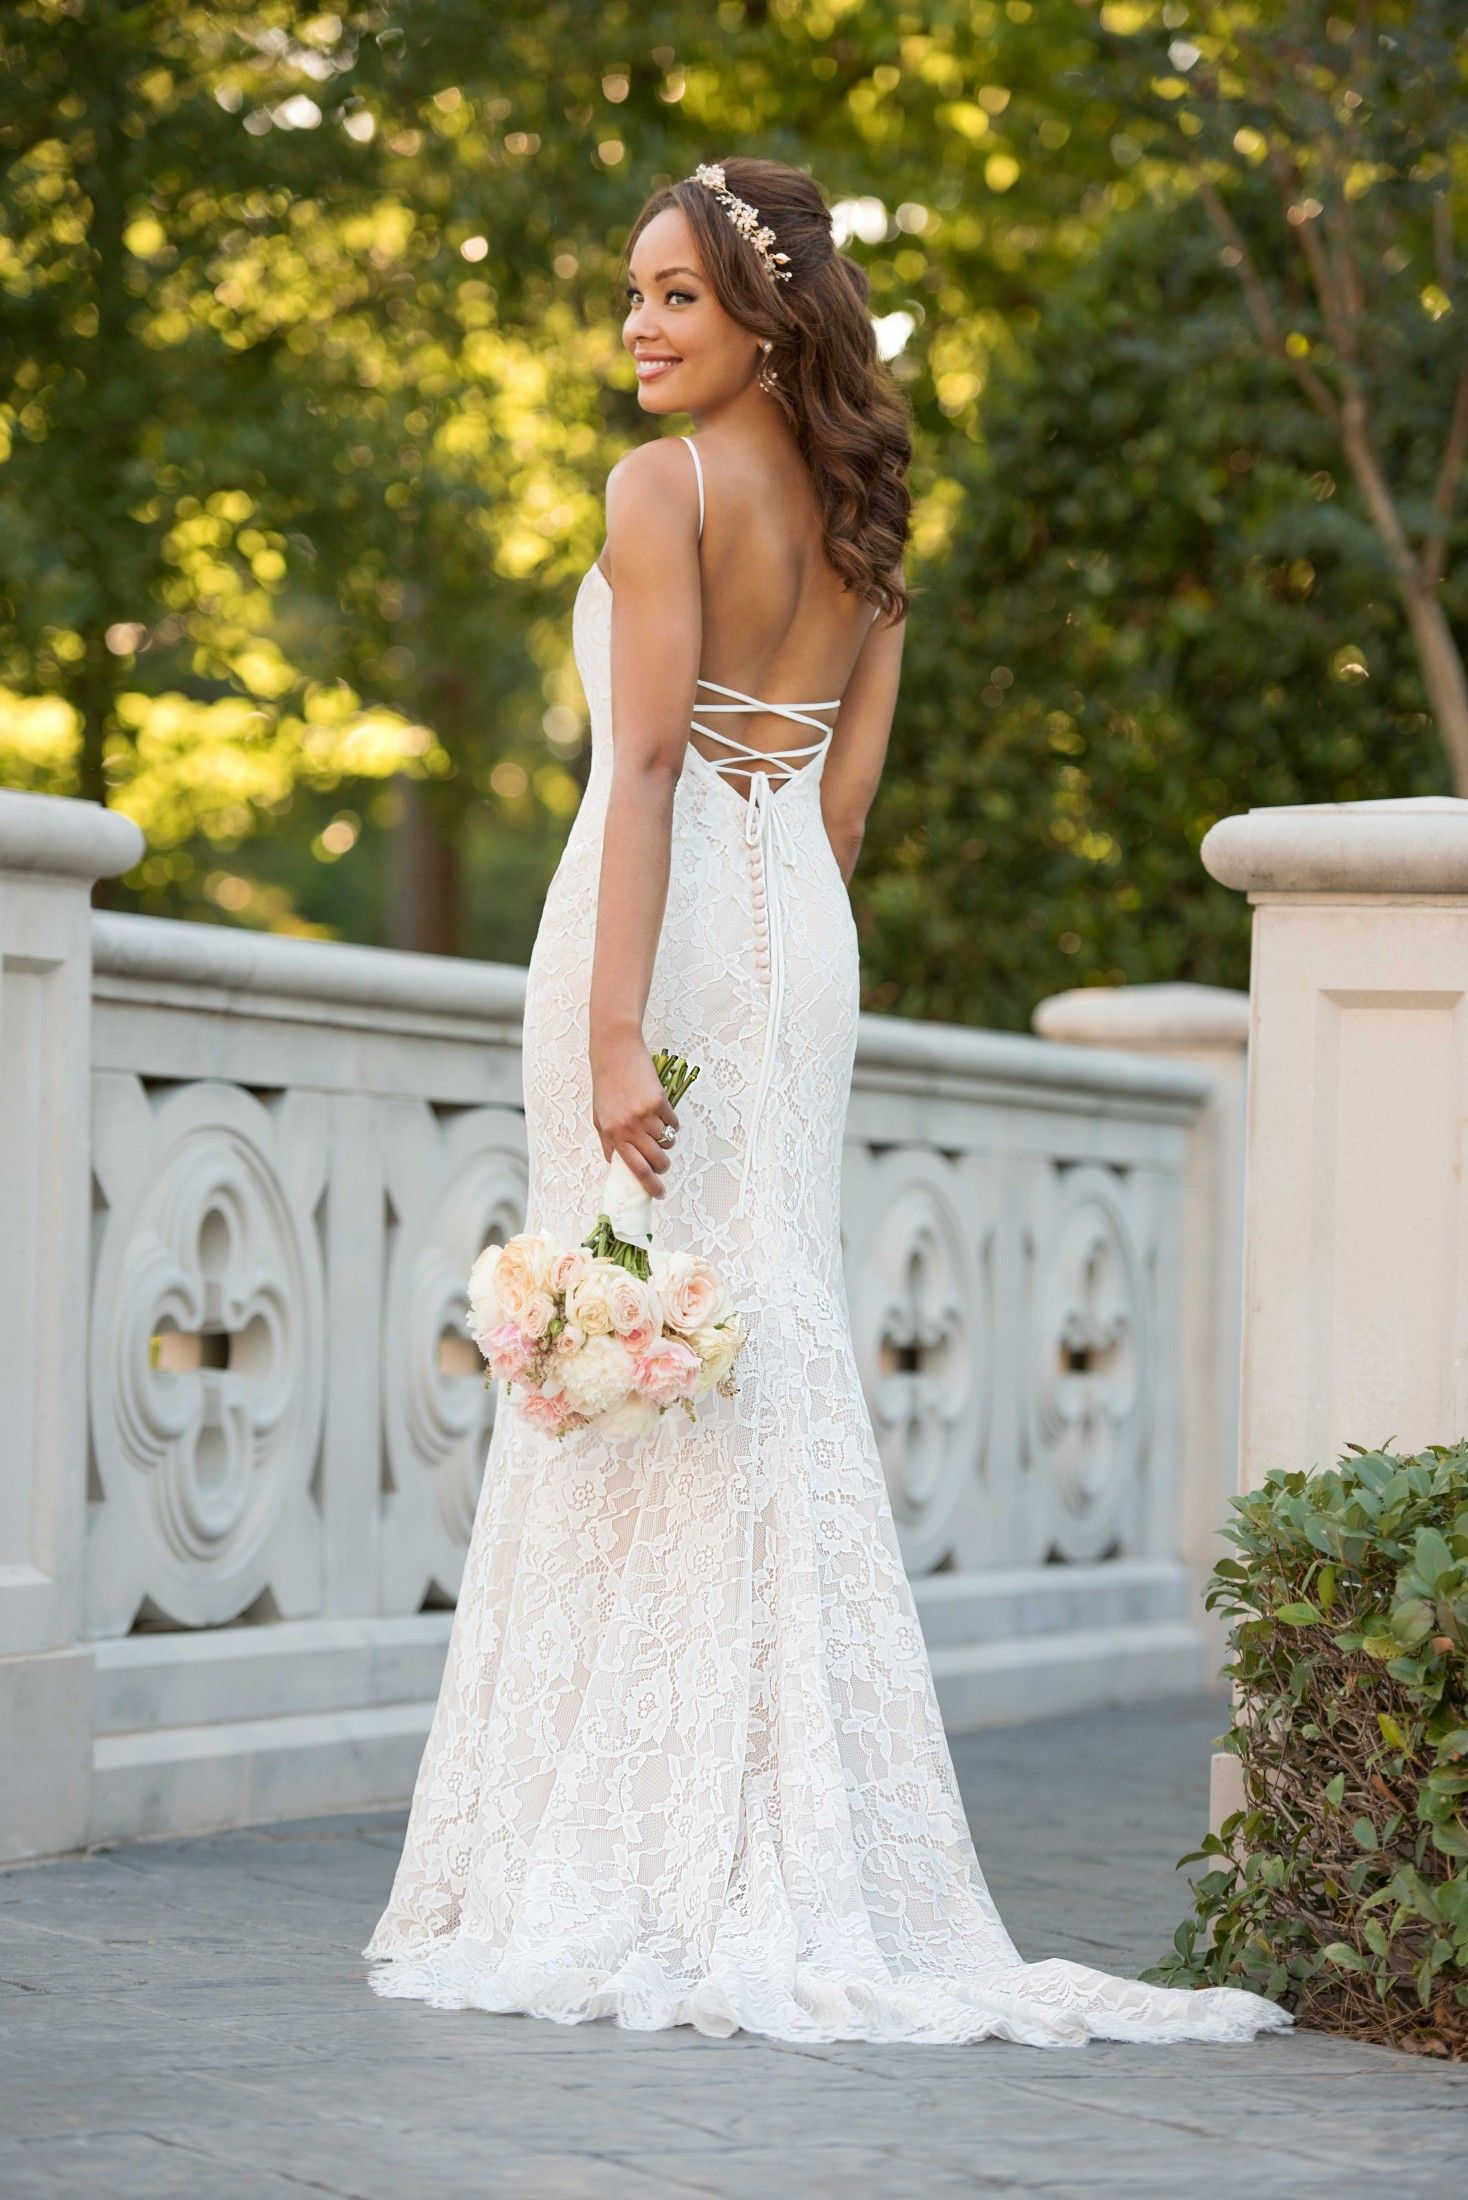 ad] Decisions, decisions! Click to find your dream wedding dress at ...